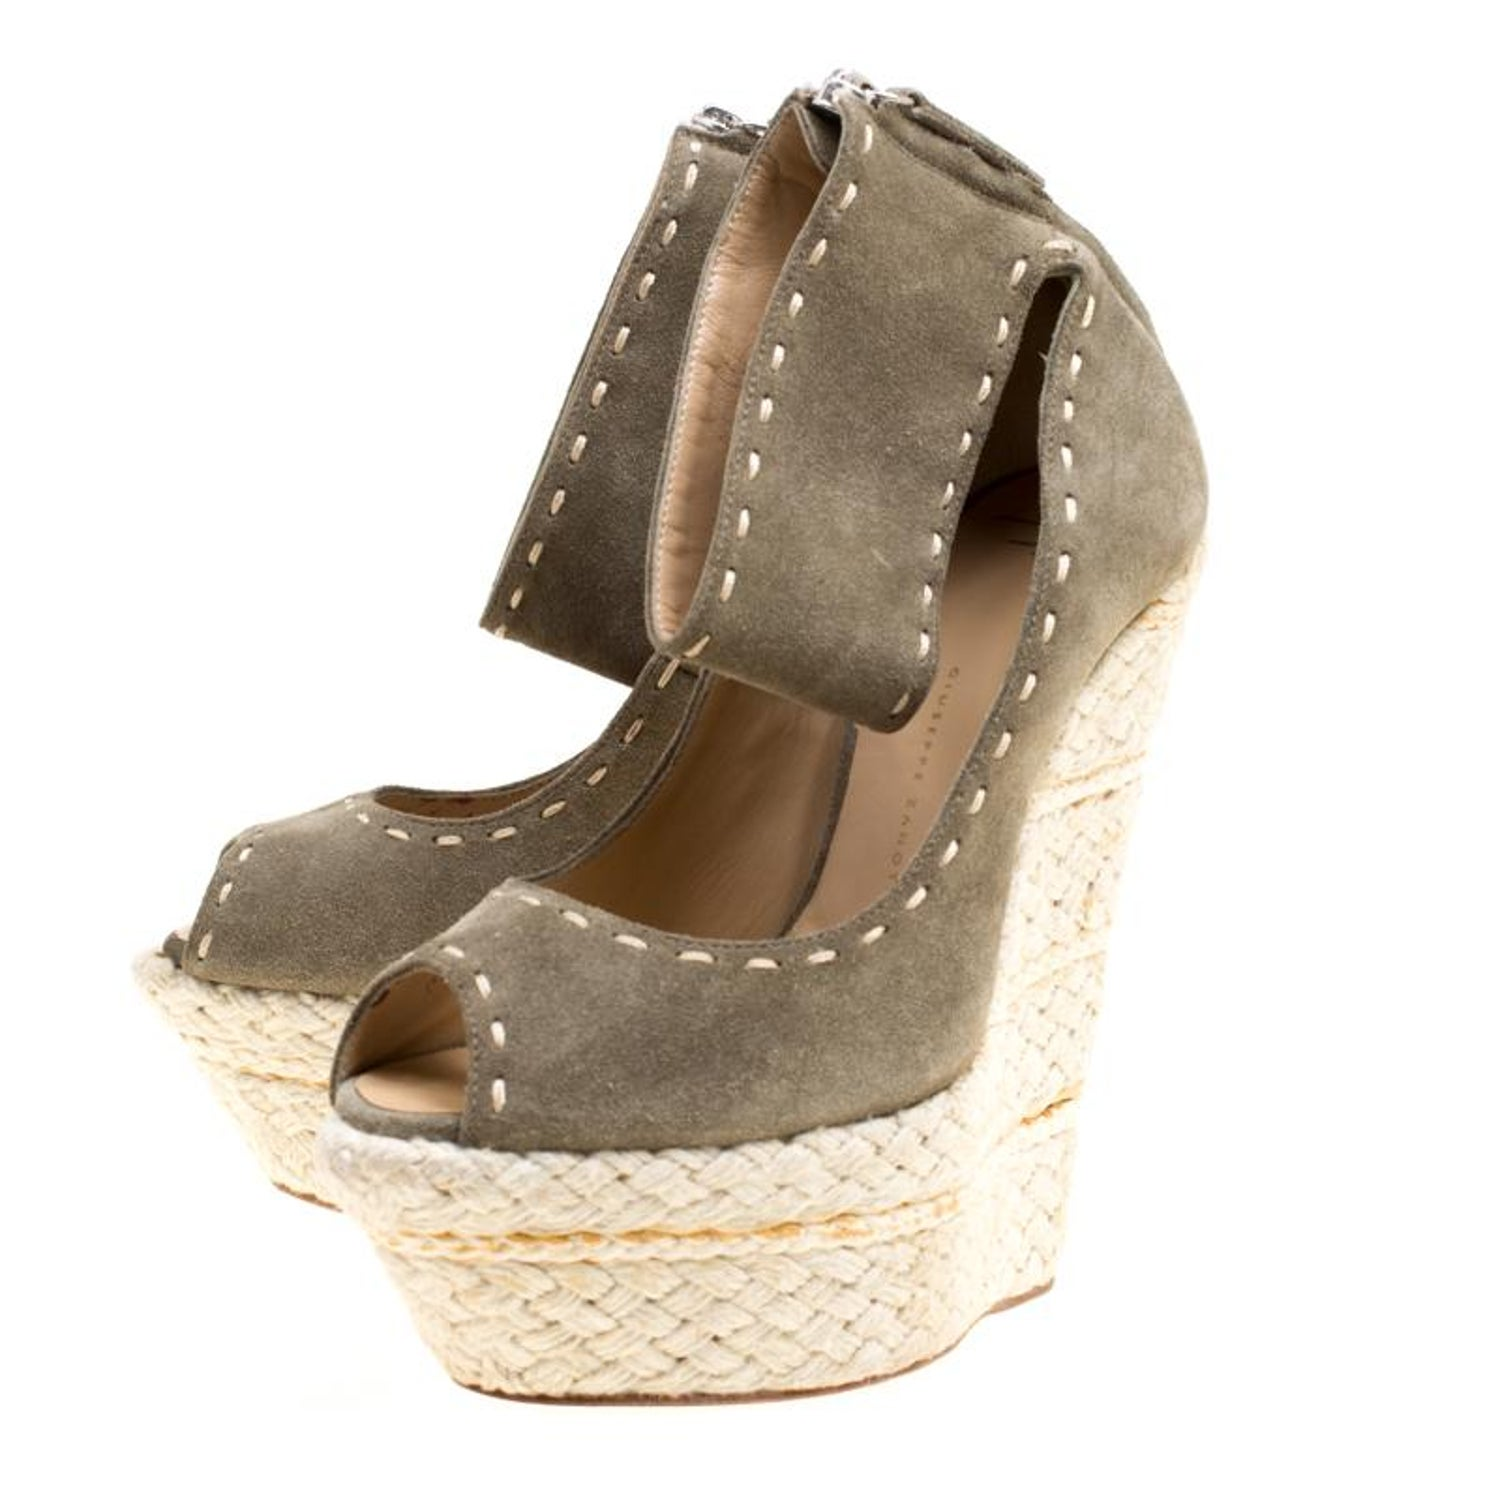 99a6b6a9e7ee Giuseppe Zanotti Suede Espadrille Wedge Ankle Strap Peep Toe Pumps Size 37 For  Sale at 1stdibs